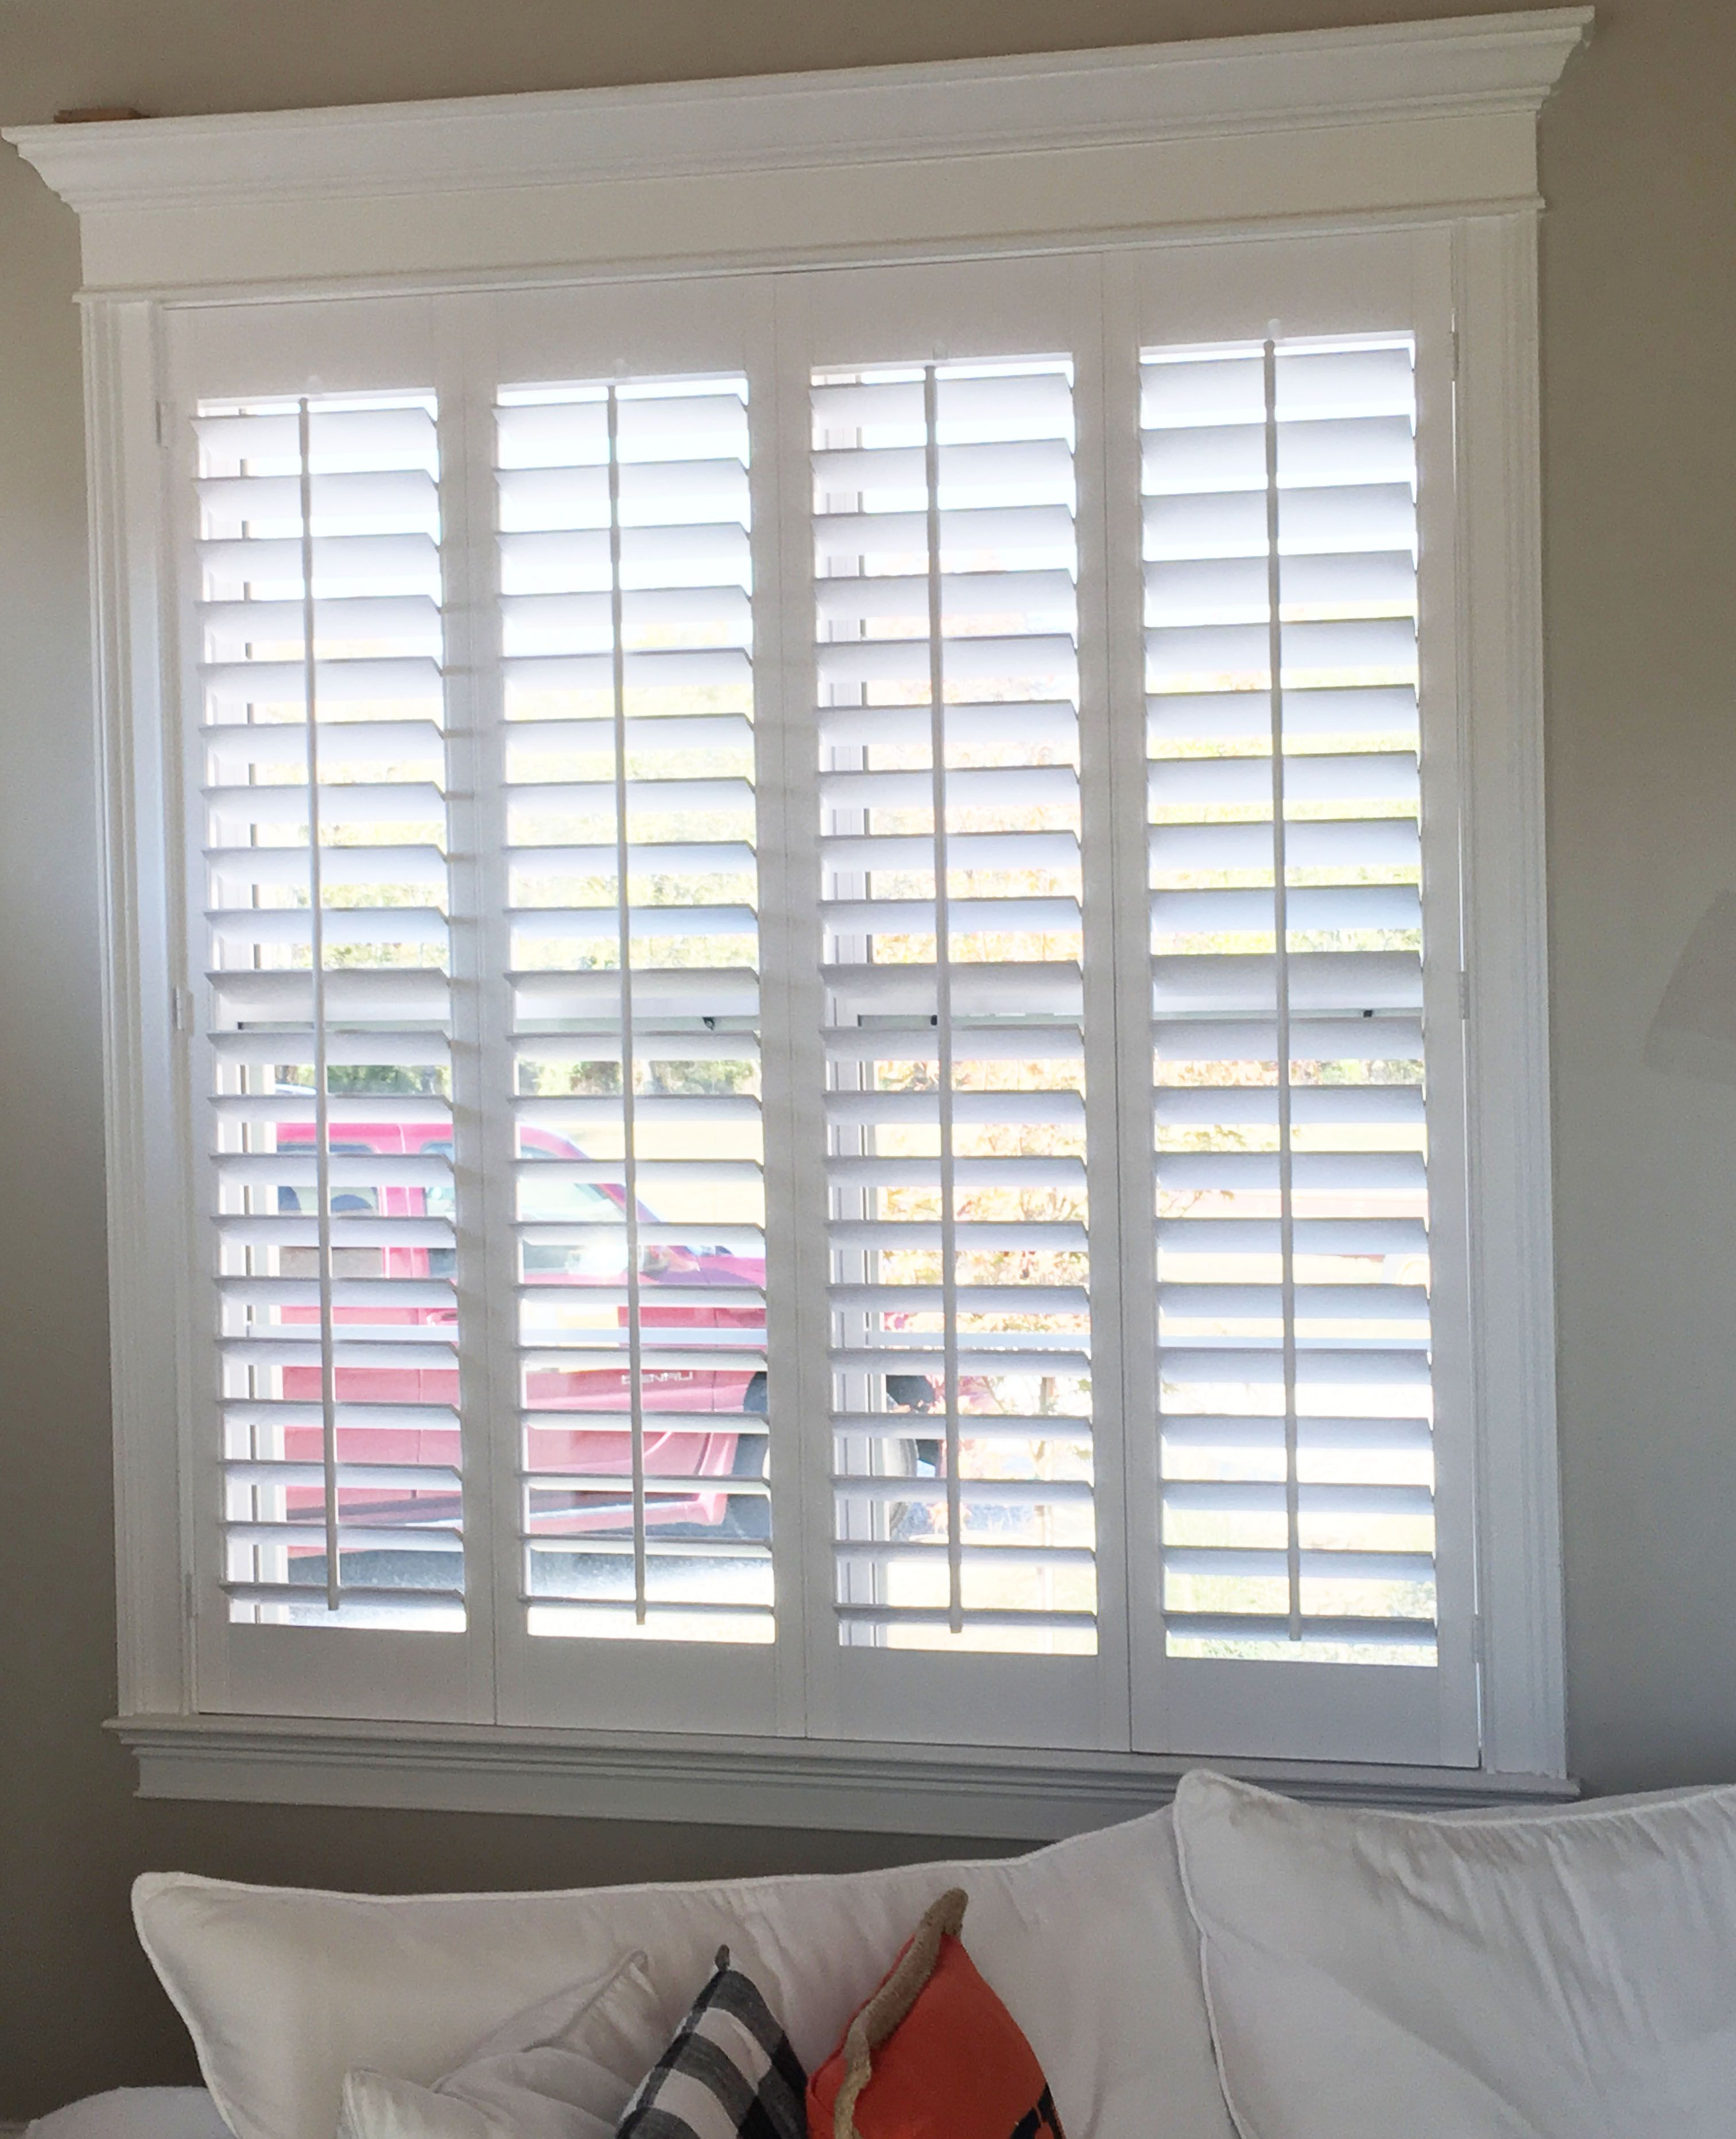 Interior window shutters  23